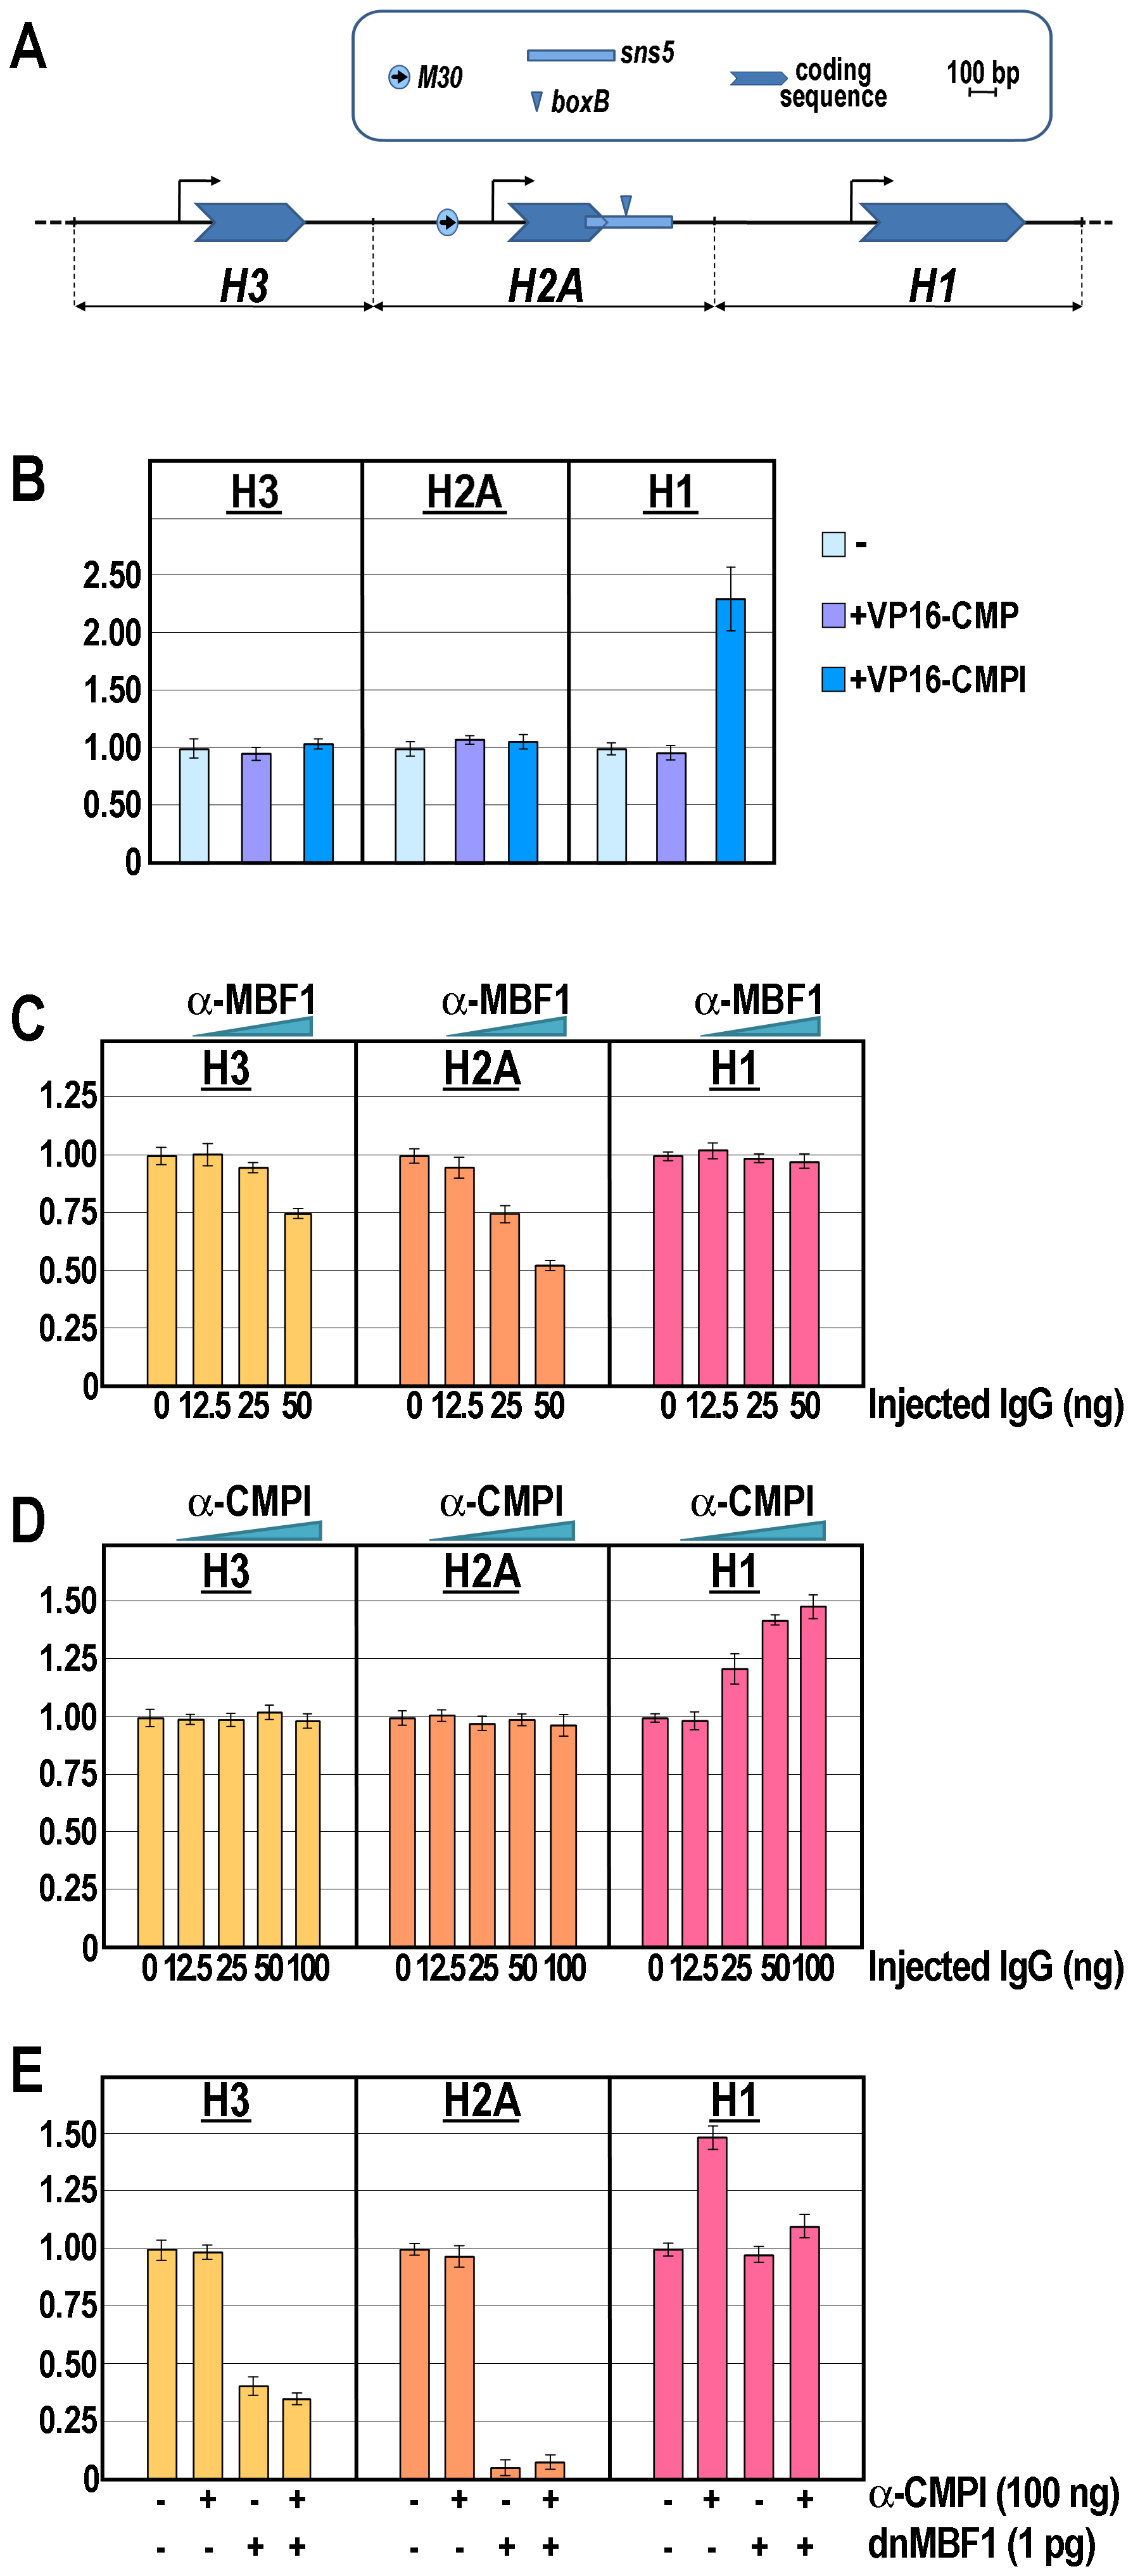 Knock-down of the <i>M30</i>-enhancer and/or <i>sns5</i>-insulator functions and effect on the endogenous early histone gene transcription.